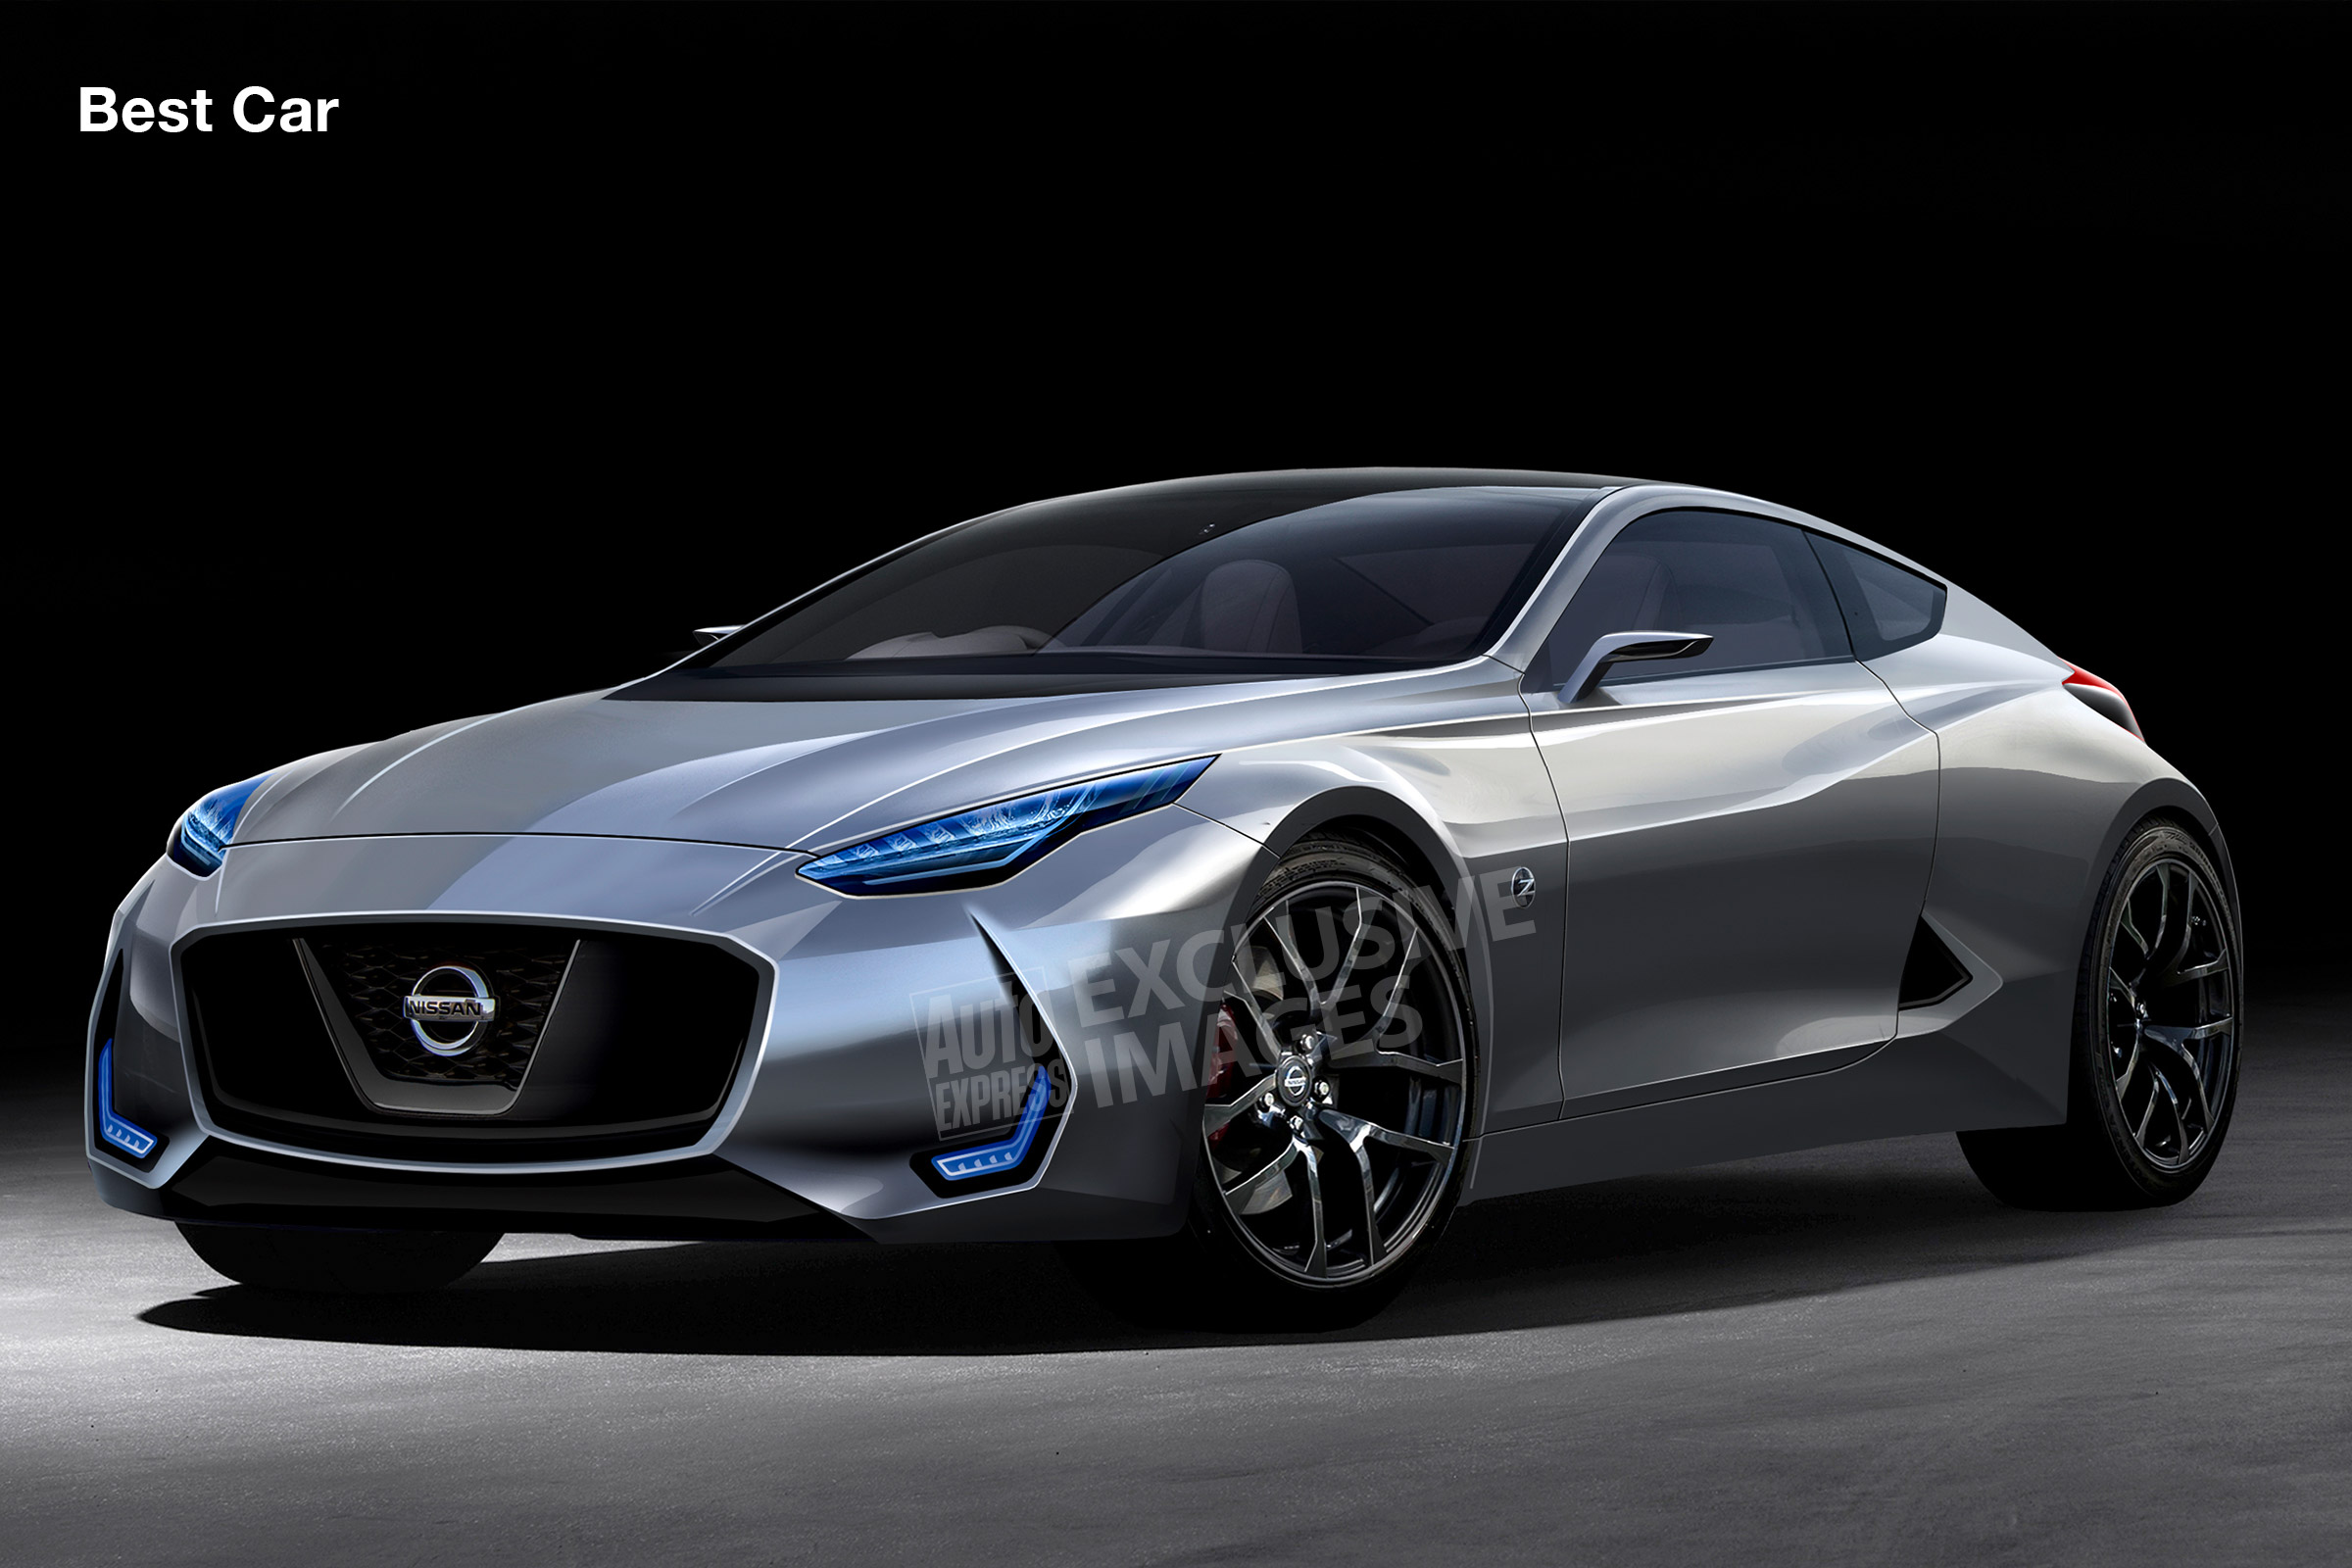 New Nissan Z-car concept